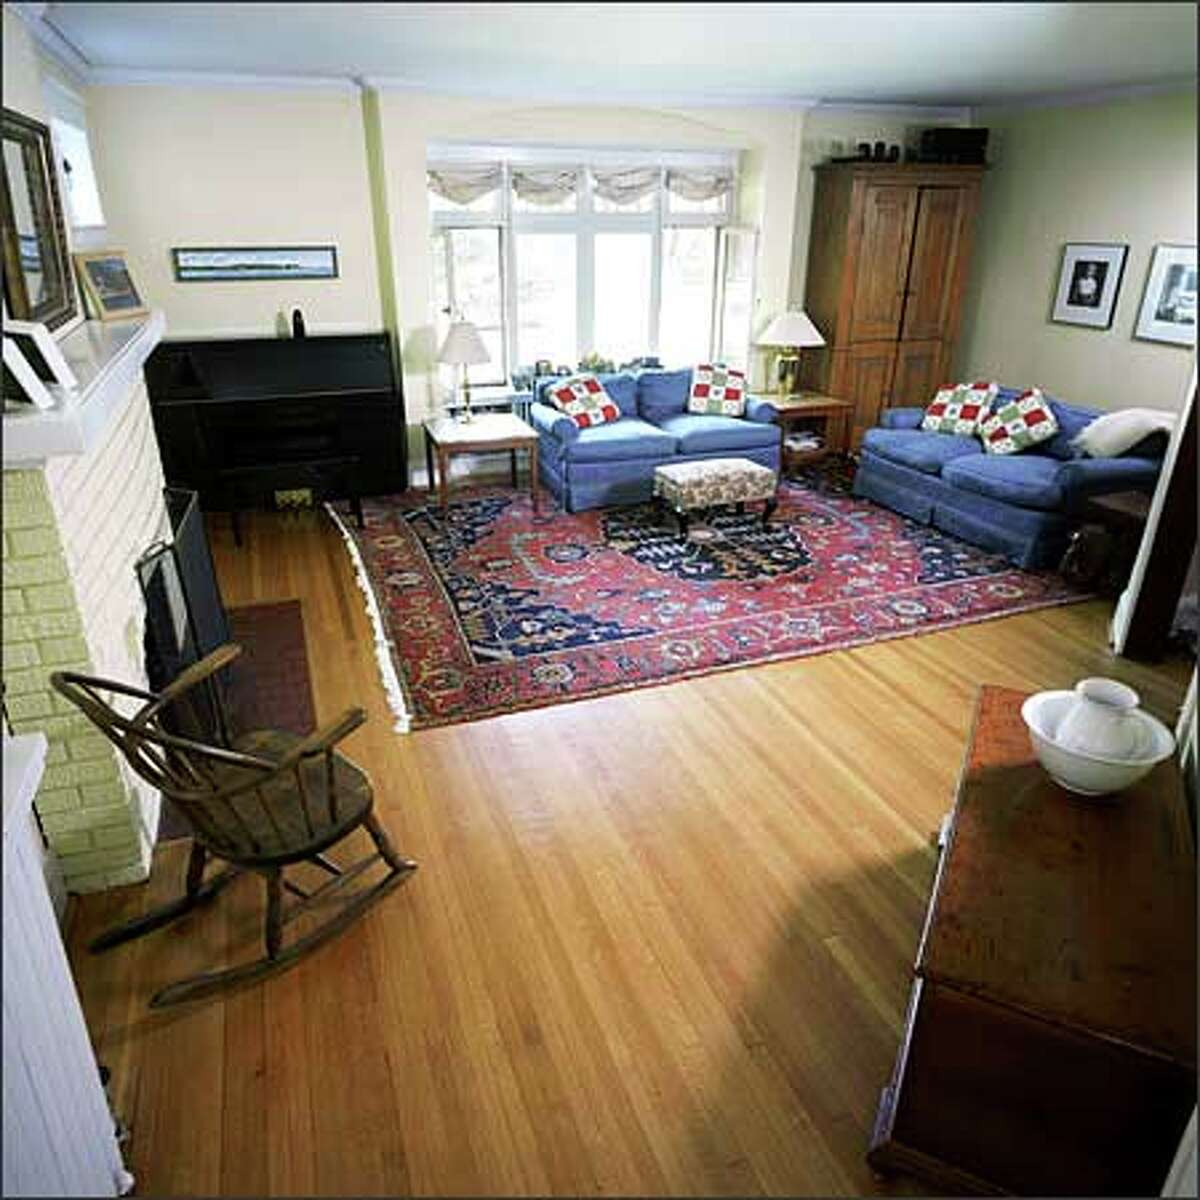 Two couches seem small in this large room. Also, the window treatment does not do justice to the main window, which boasts a wonderful arch.